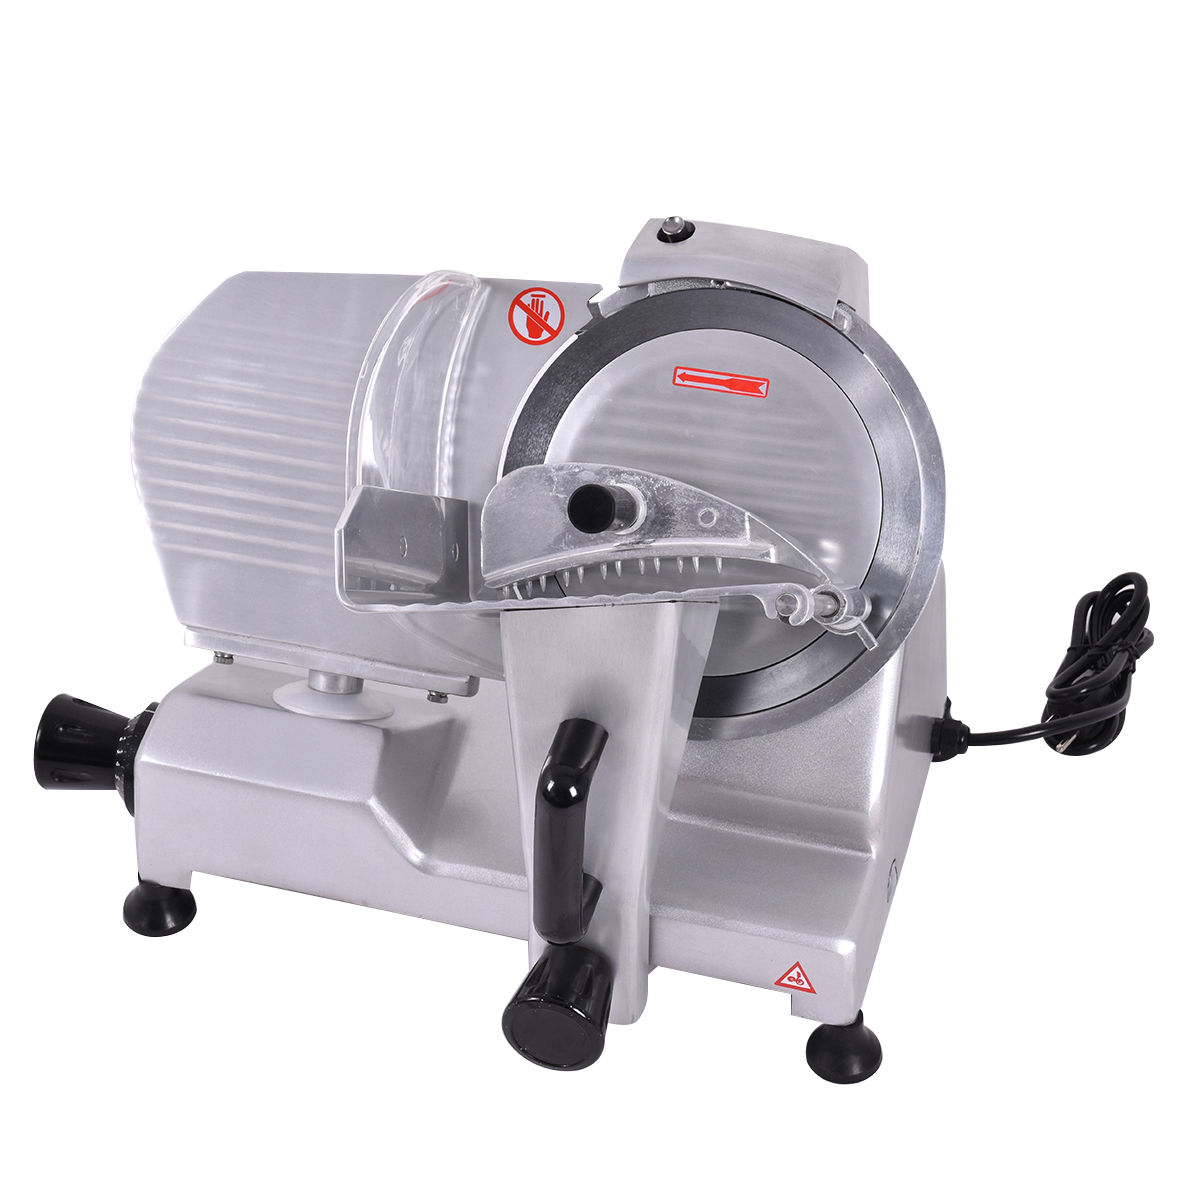 Costway 9'' Blade Commercial Meat Slicer Deli Meat Cheese...